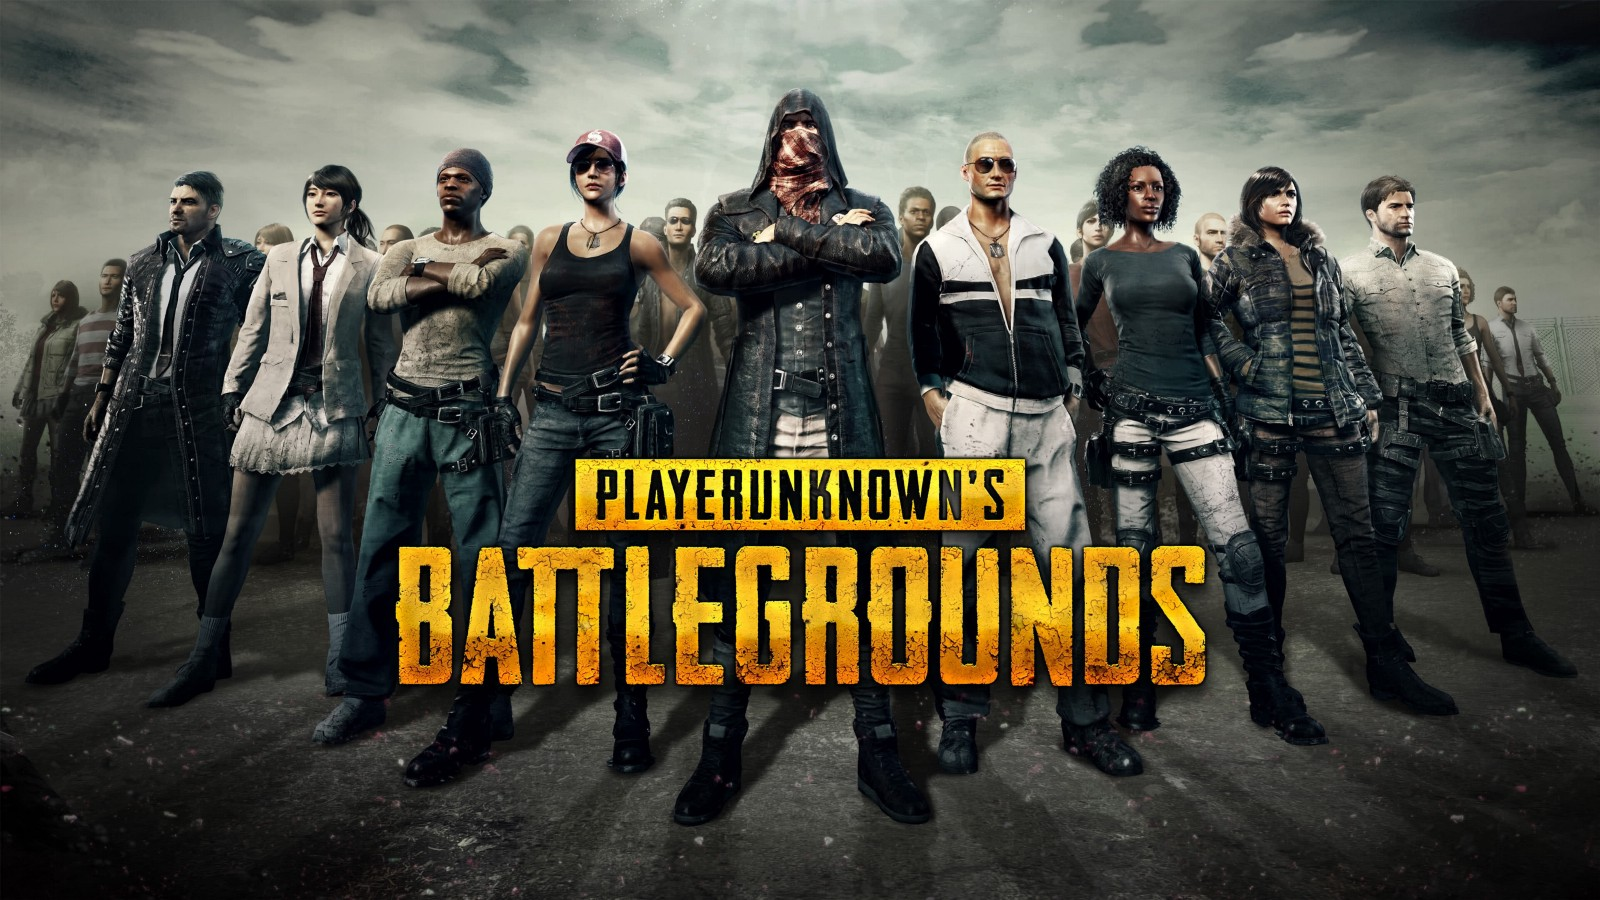 Pubg A Creative By Global Underdogs That Stunned The World